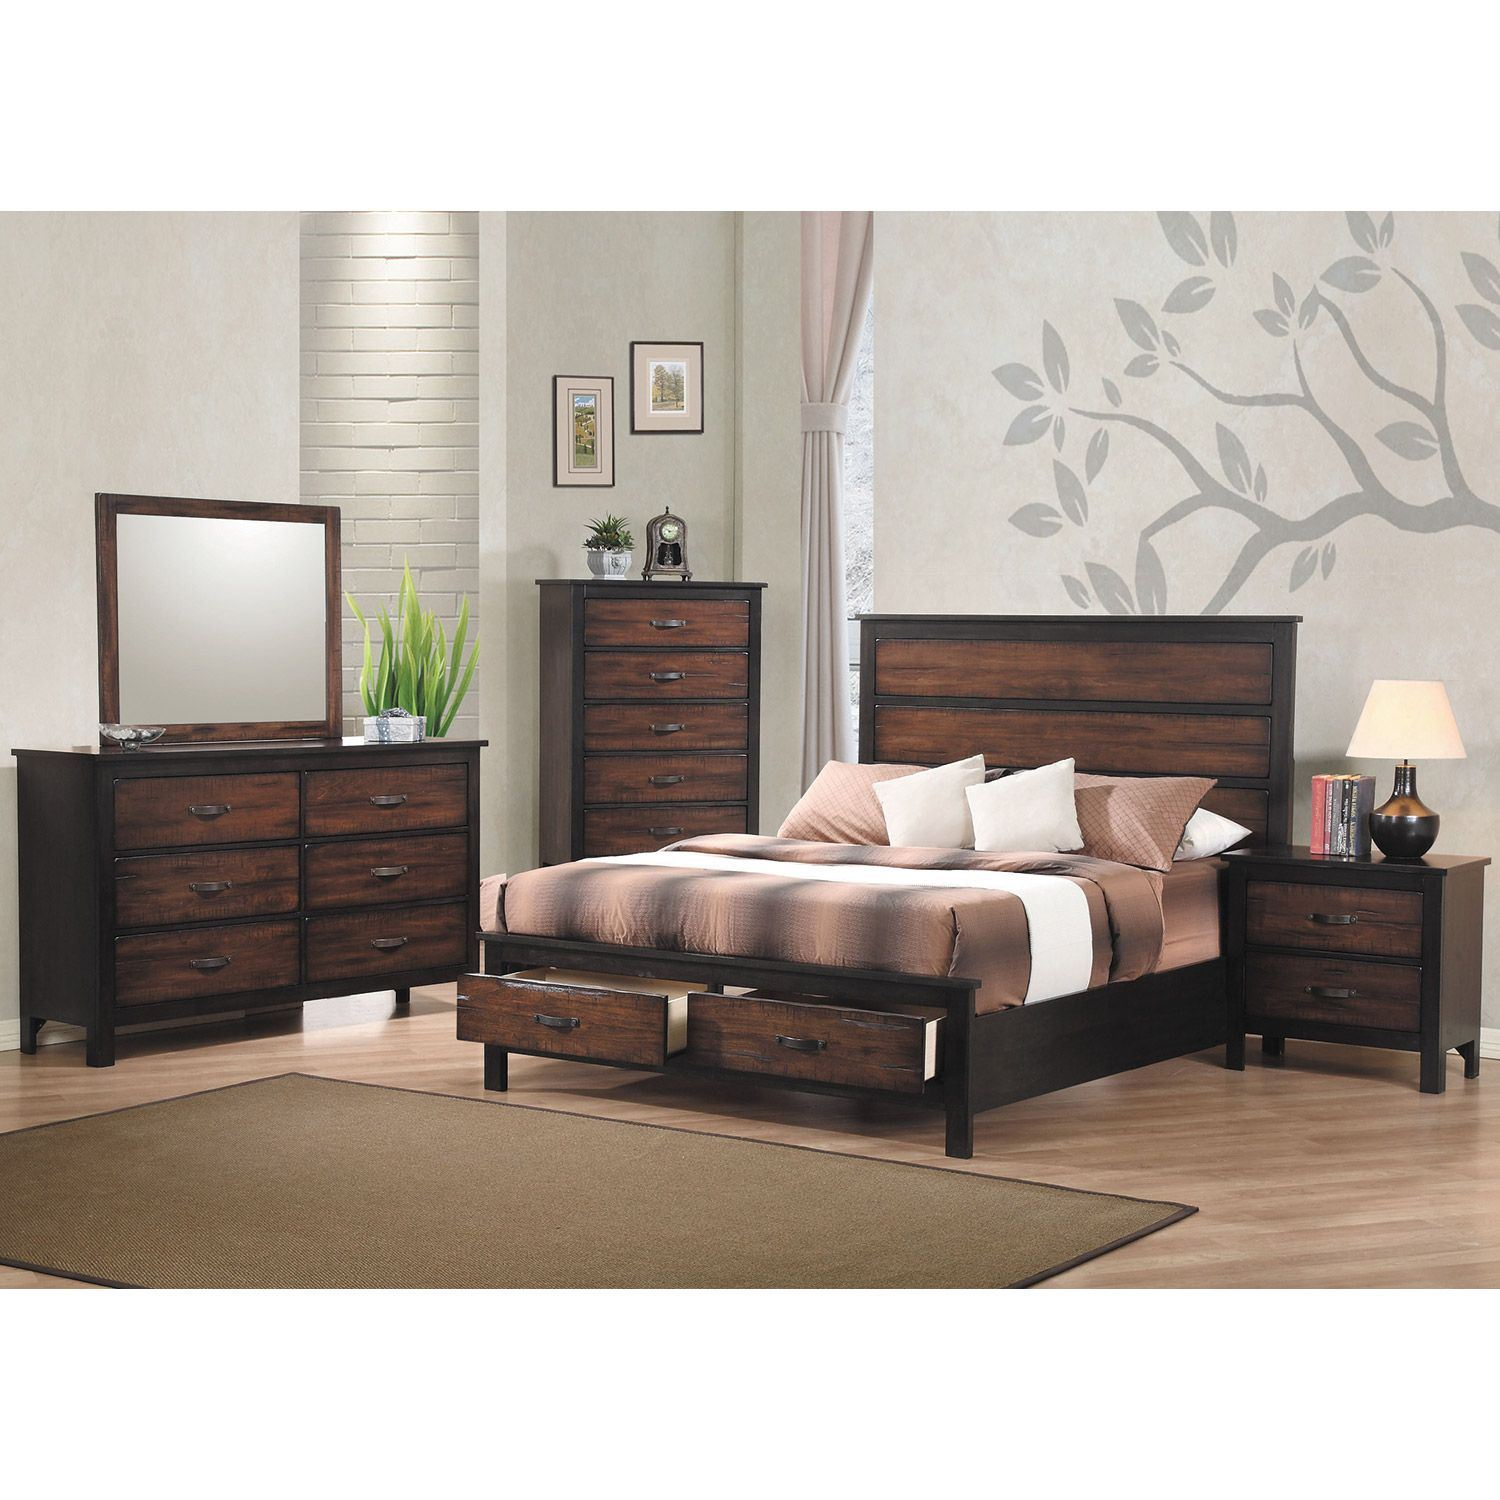 Conway 2 drawer nightstand 202 2 coaster furniture afw for Coaster co of america furniture